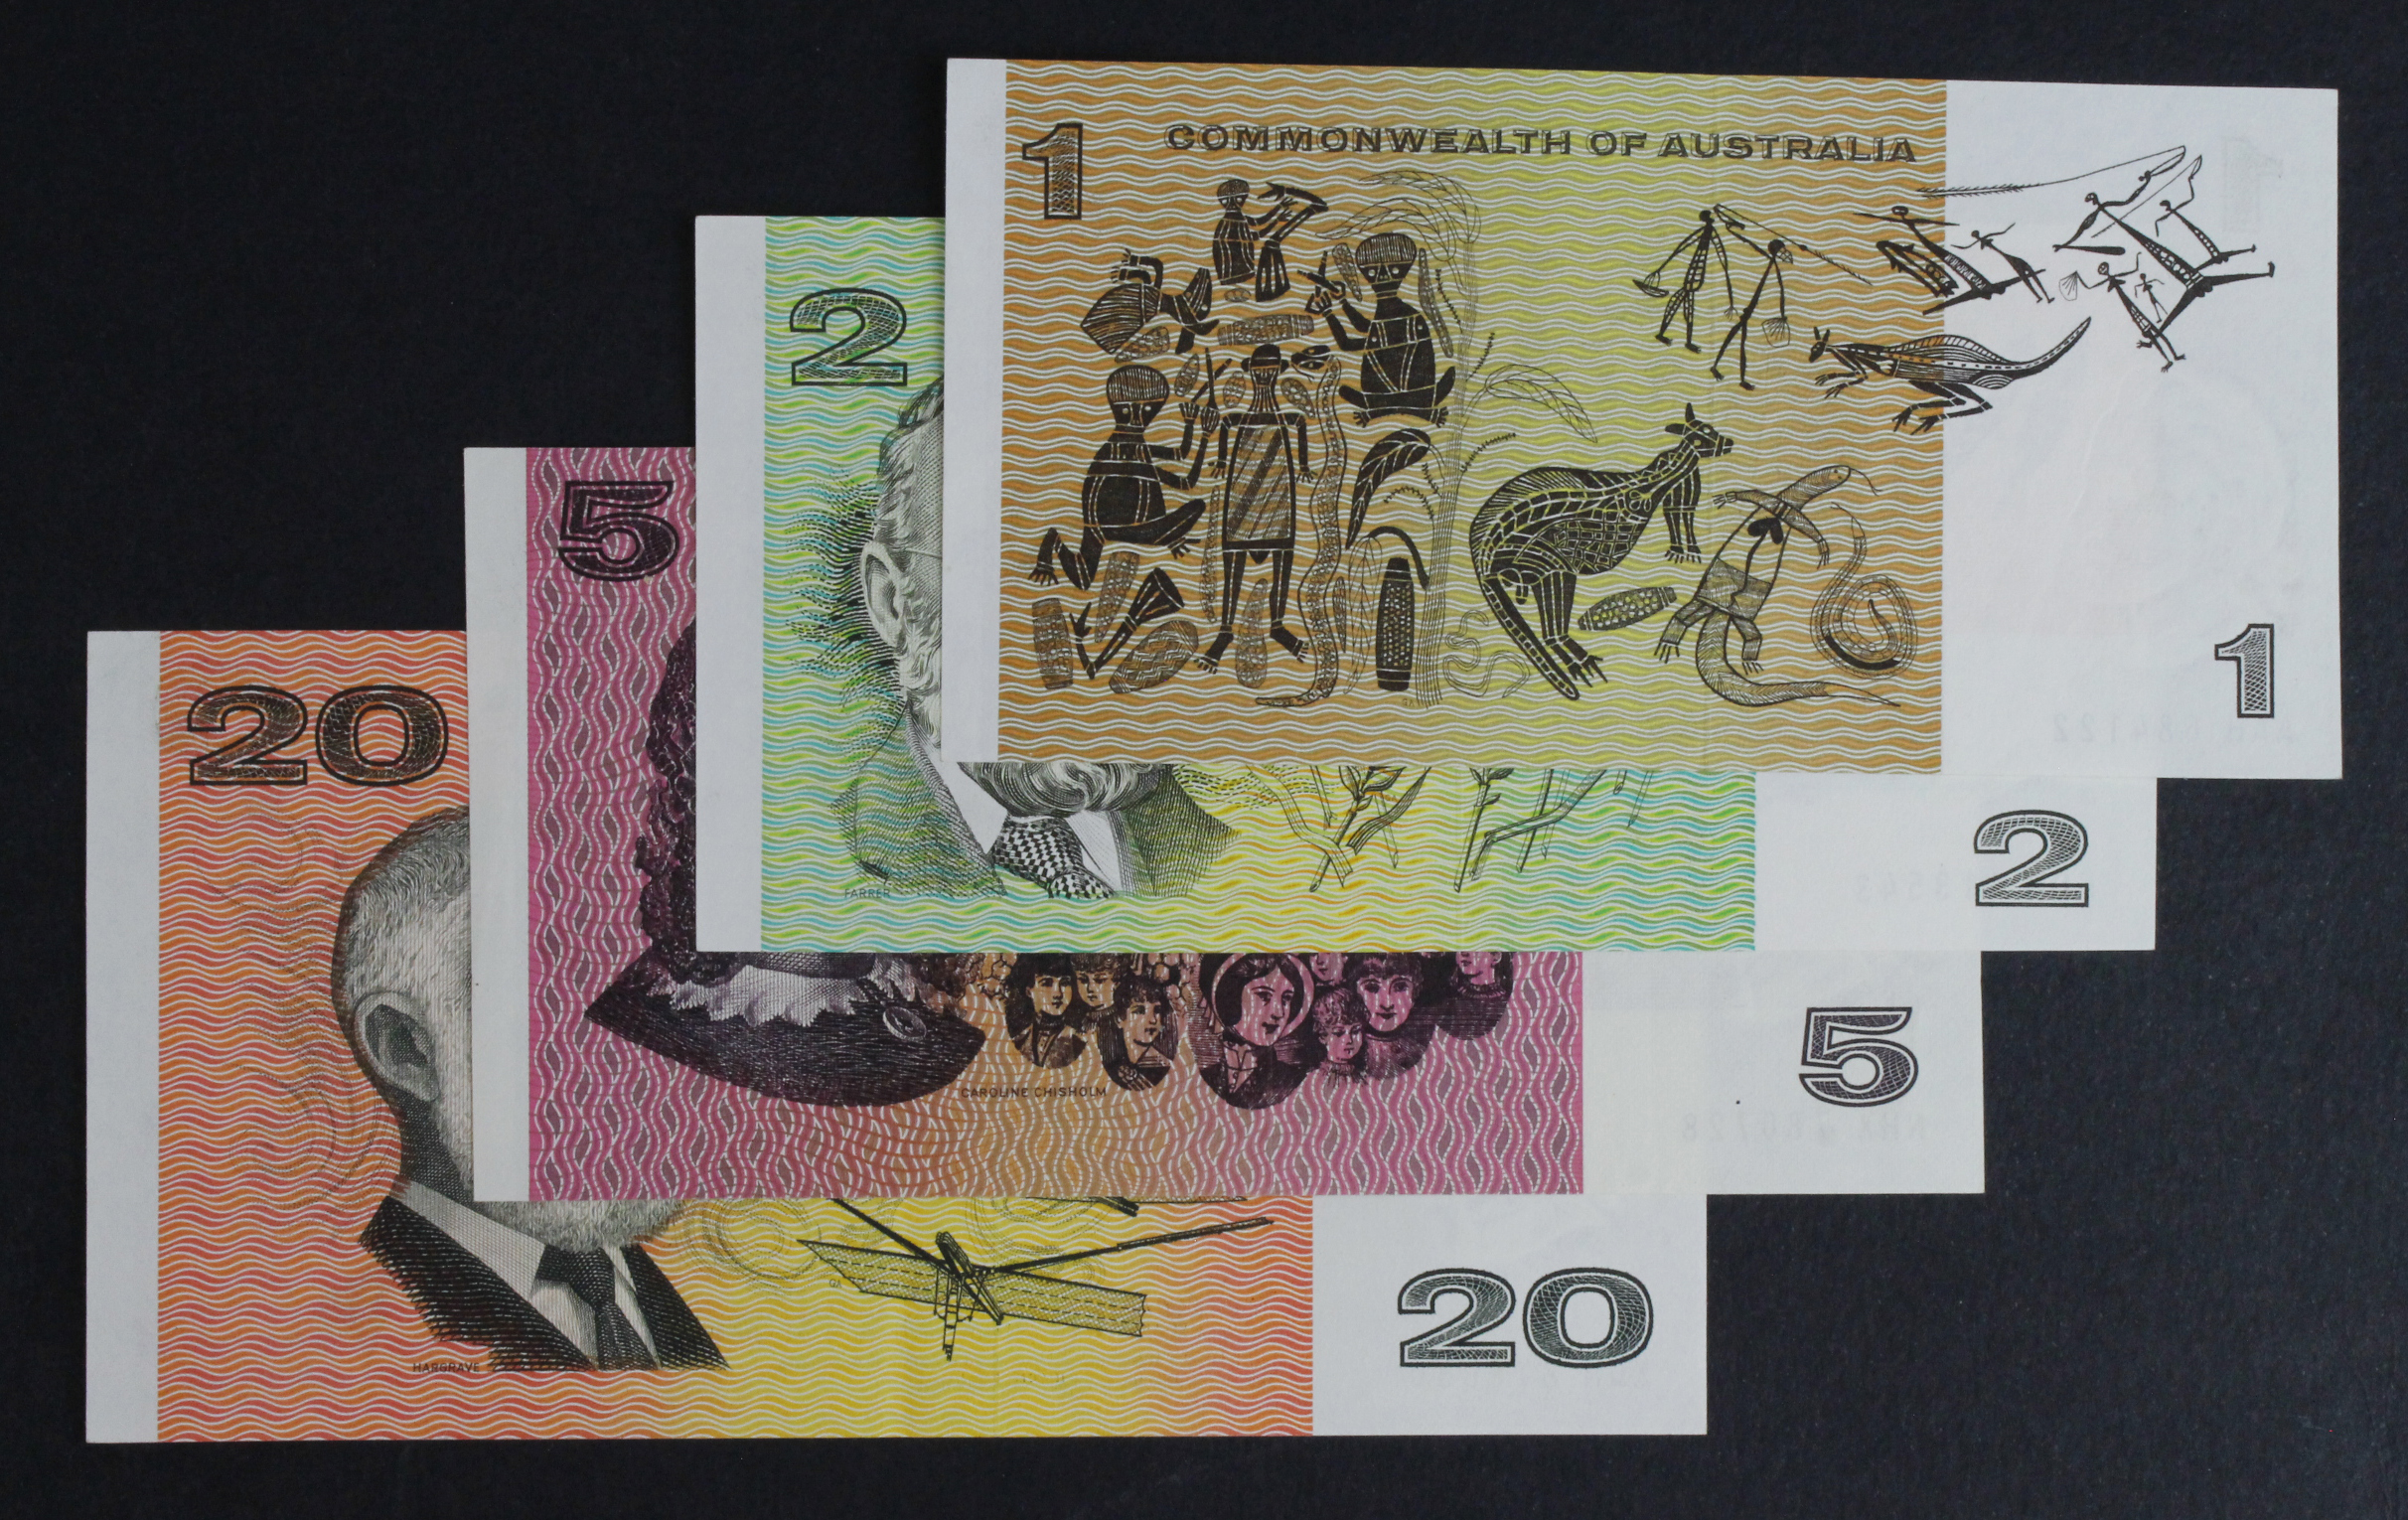 Australia (4), a group of earlier Commonwealth of Australia issues, 20 Dollars, 2 Dollars & 1 Dollar - Image 2 of 2